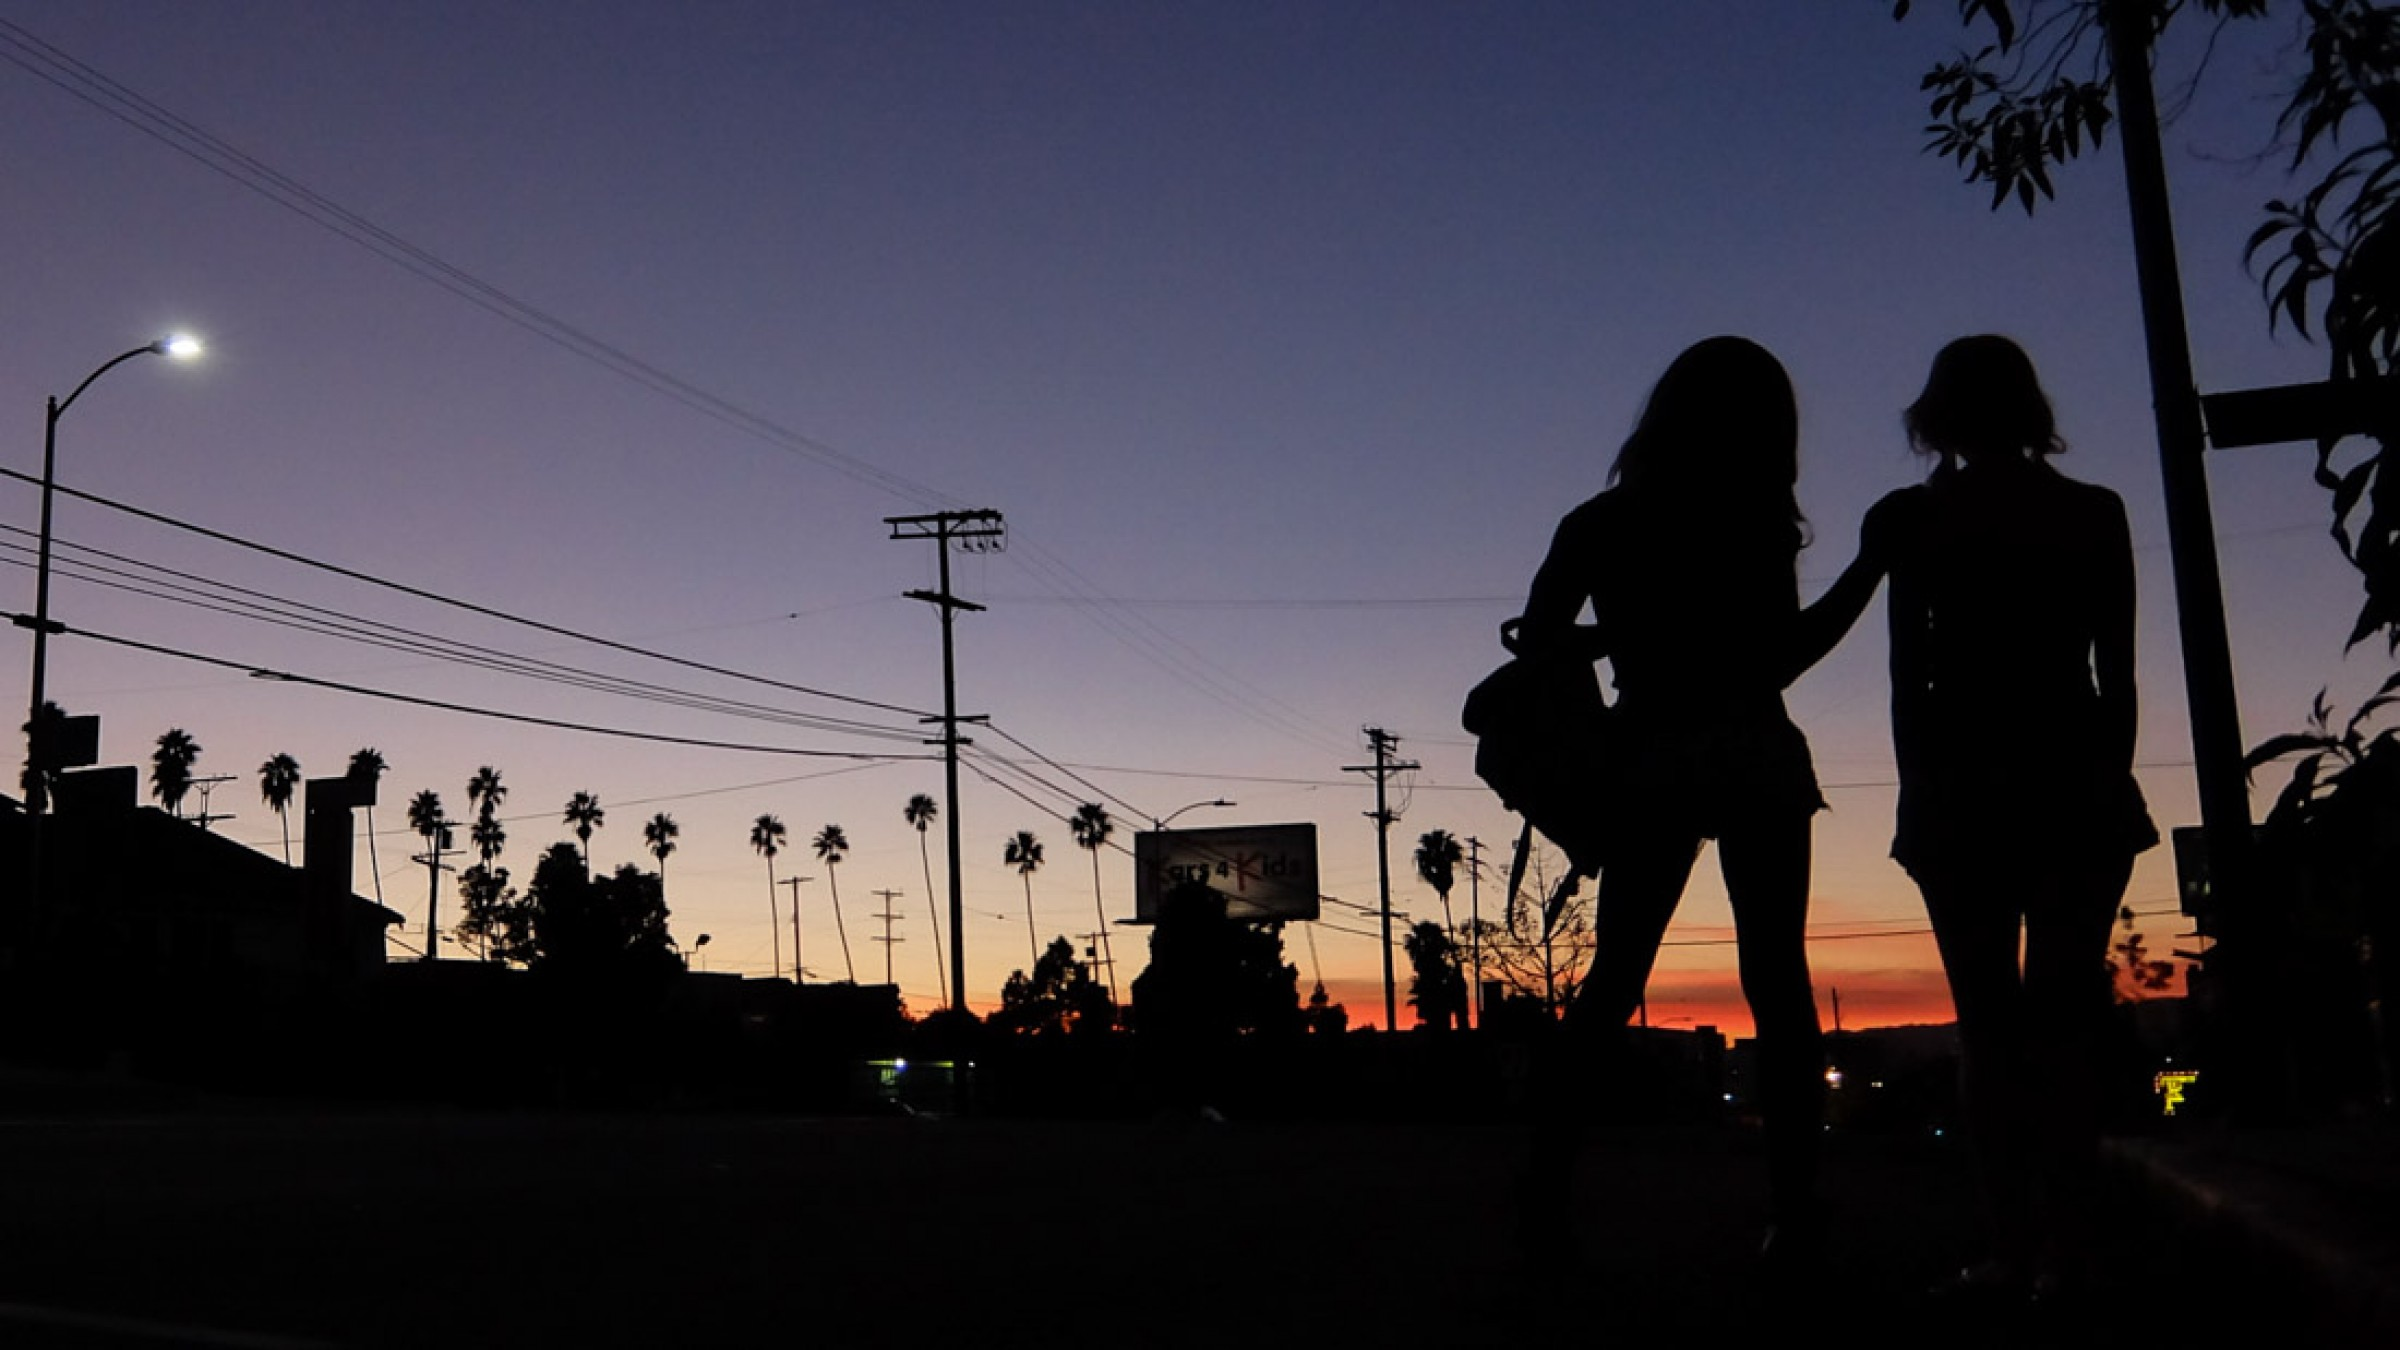 The Feature Film That Blew Everyone Away at Sundance Was Shot on an iPhone 5s